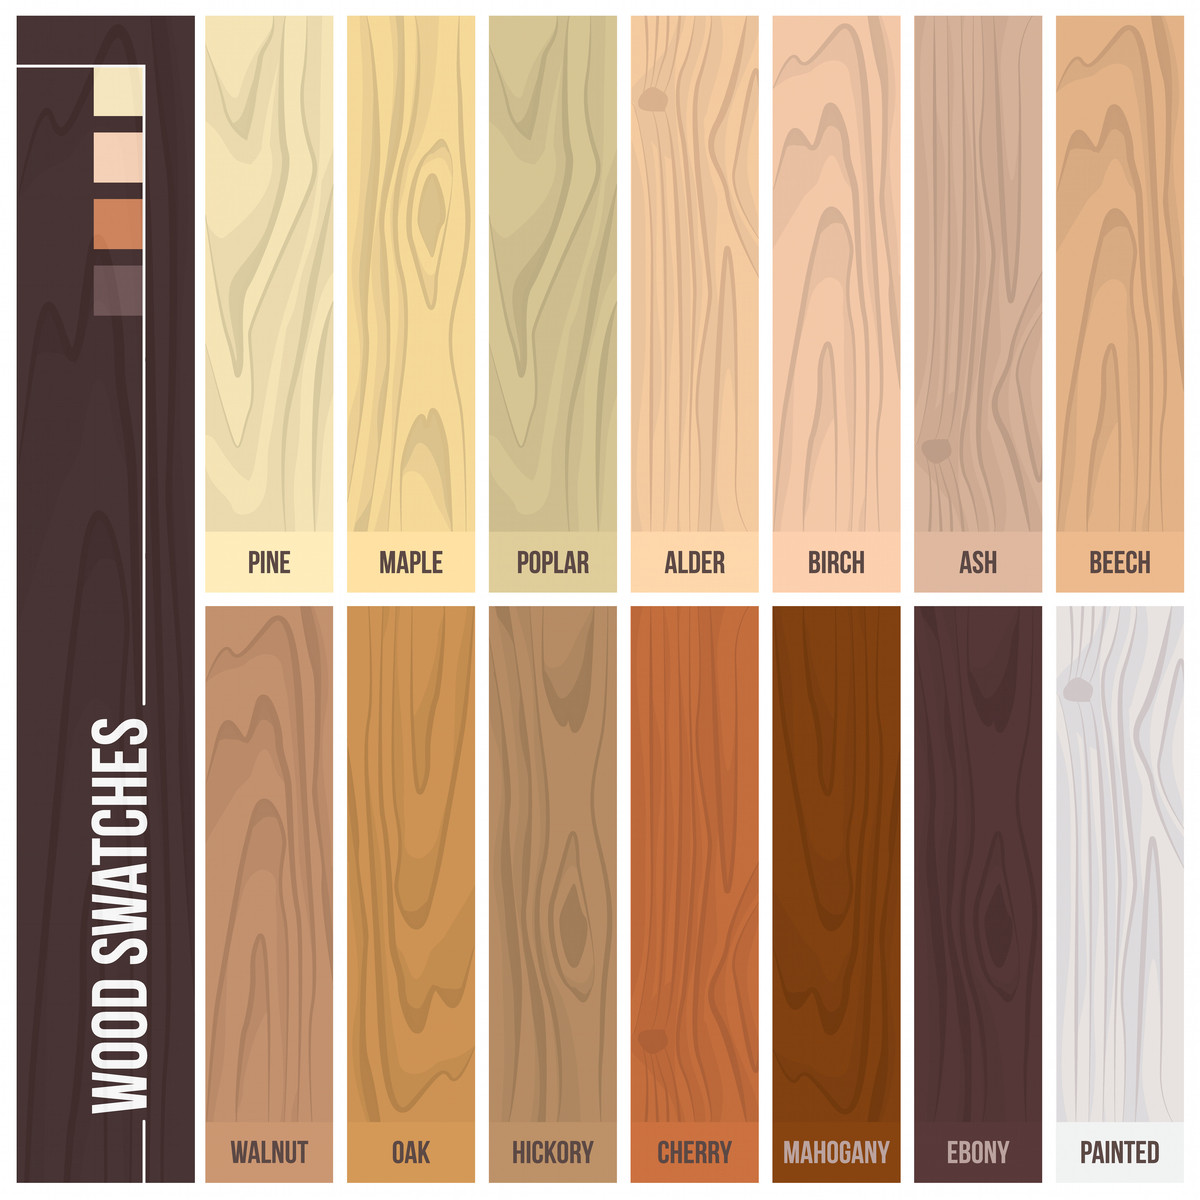 staining unfinished hardwood floors of 12 types of hardwood flooring species styles edging dimensions for types of hardwood flooring illustrated guide